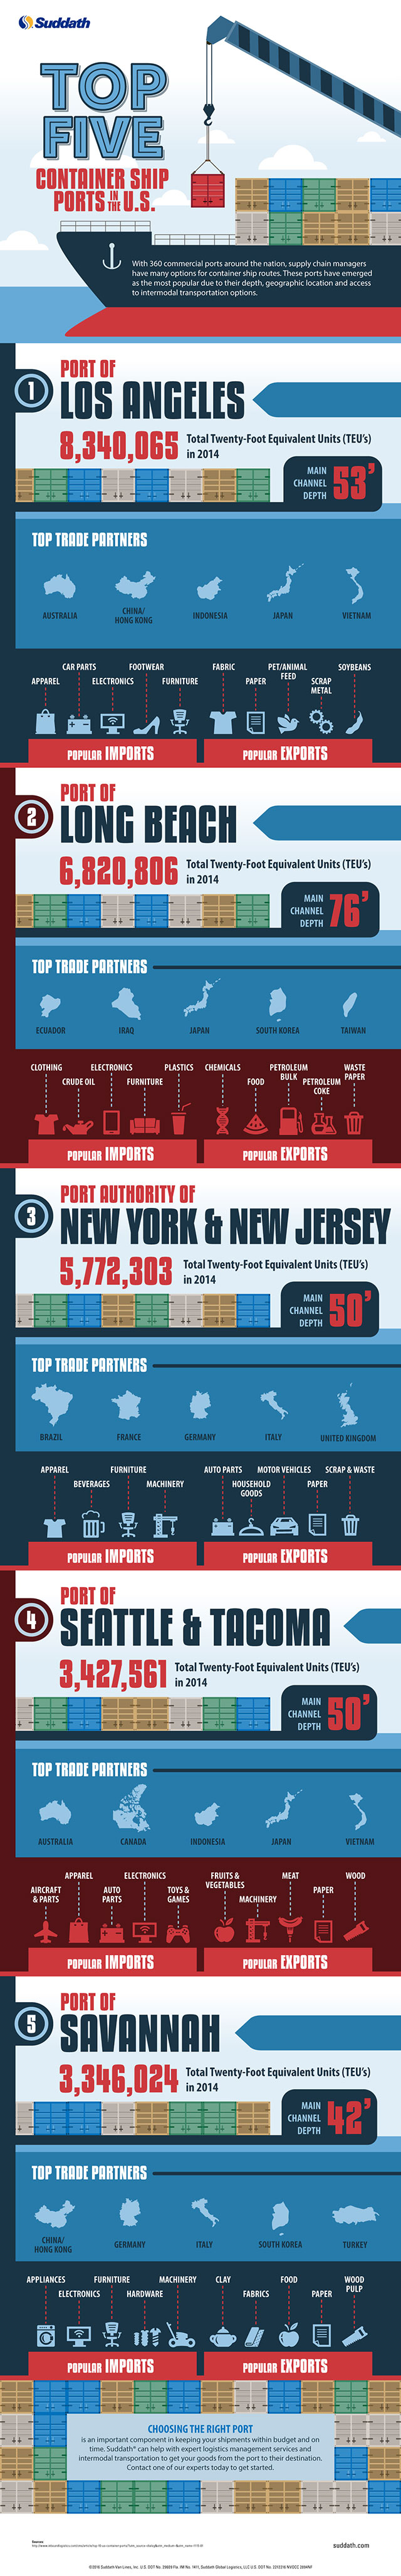 Top Five Container Ship Ports in the U.S.